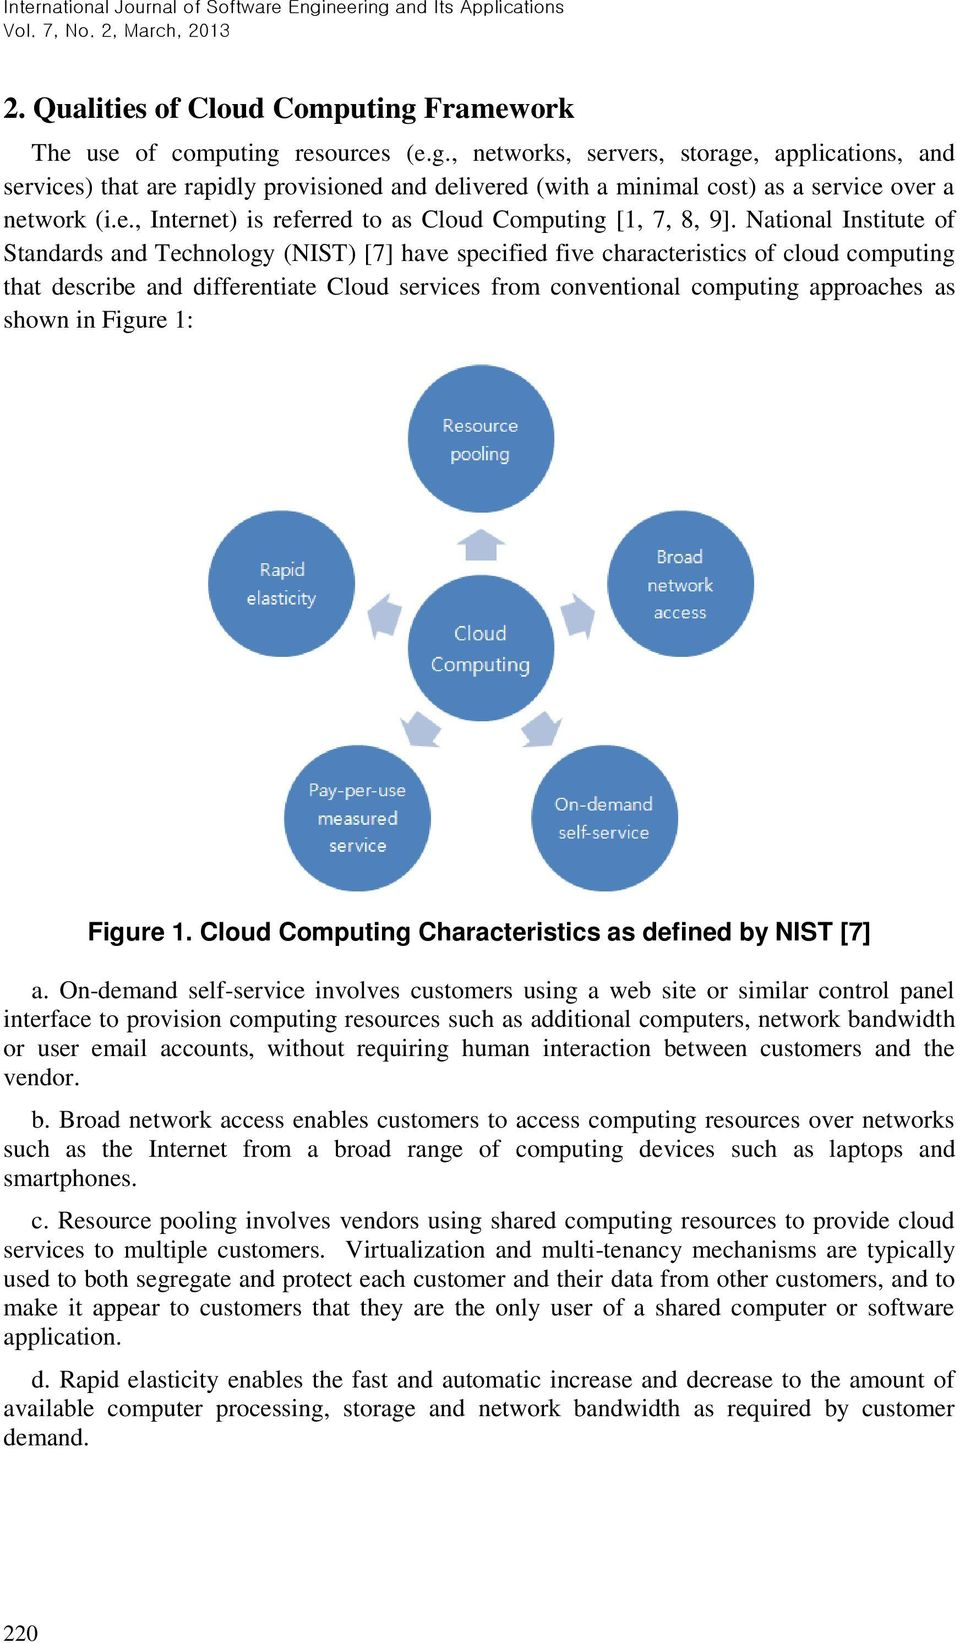 National Institute of Standards and Technology (NIST) [7] have specified five characteristics of cloud computing that describe and differentiate Cloud services from conventional computing approaches